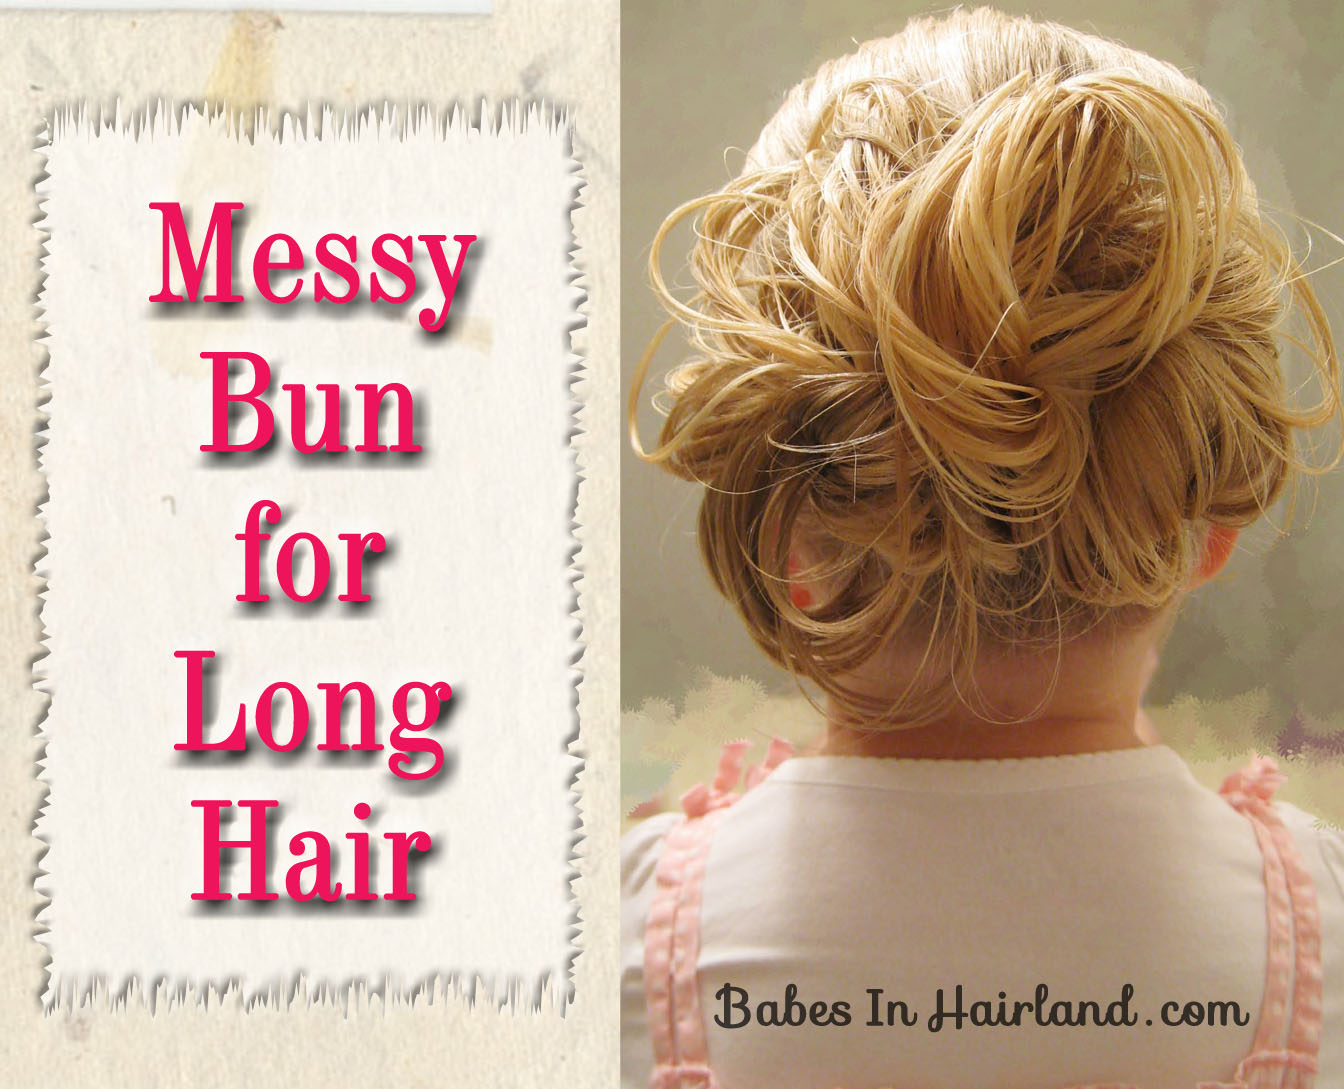 Messy Bun for Long Hair (1)